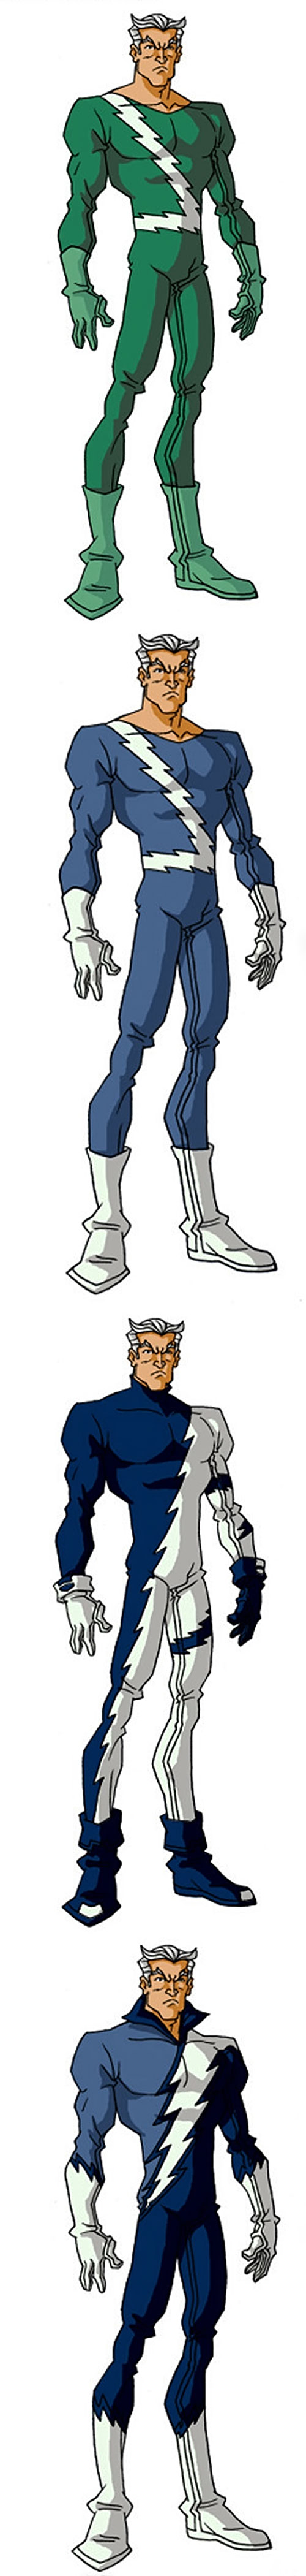 Quicksilver (Marvel Comics) gallery by RonnieThunderbolts